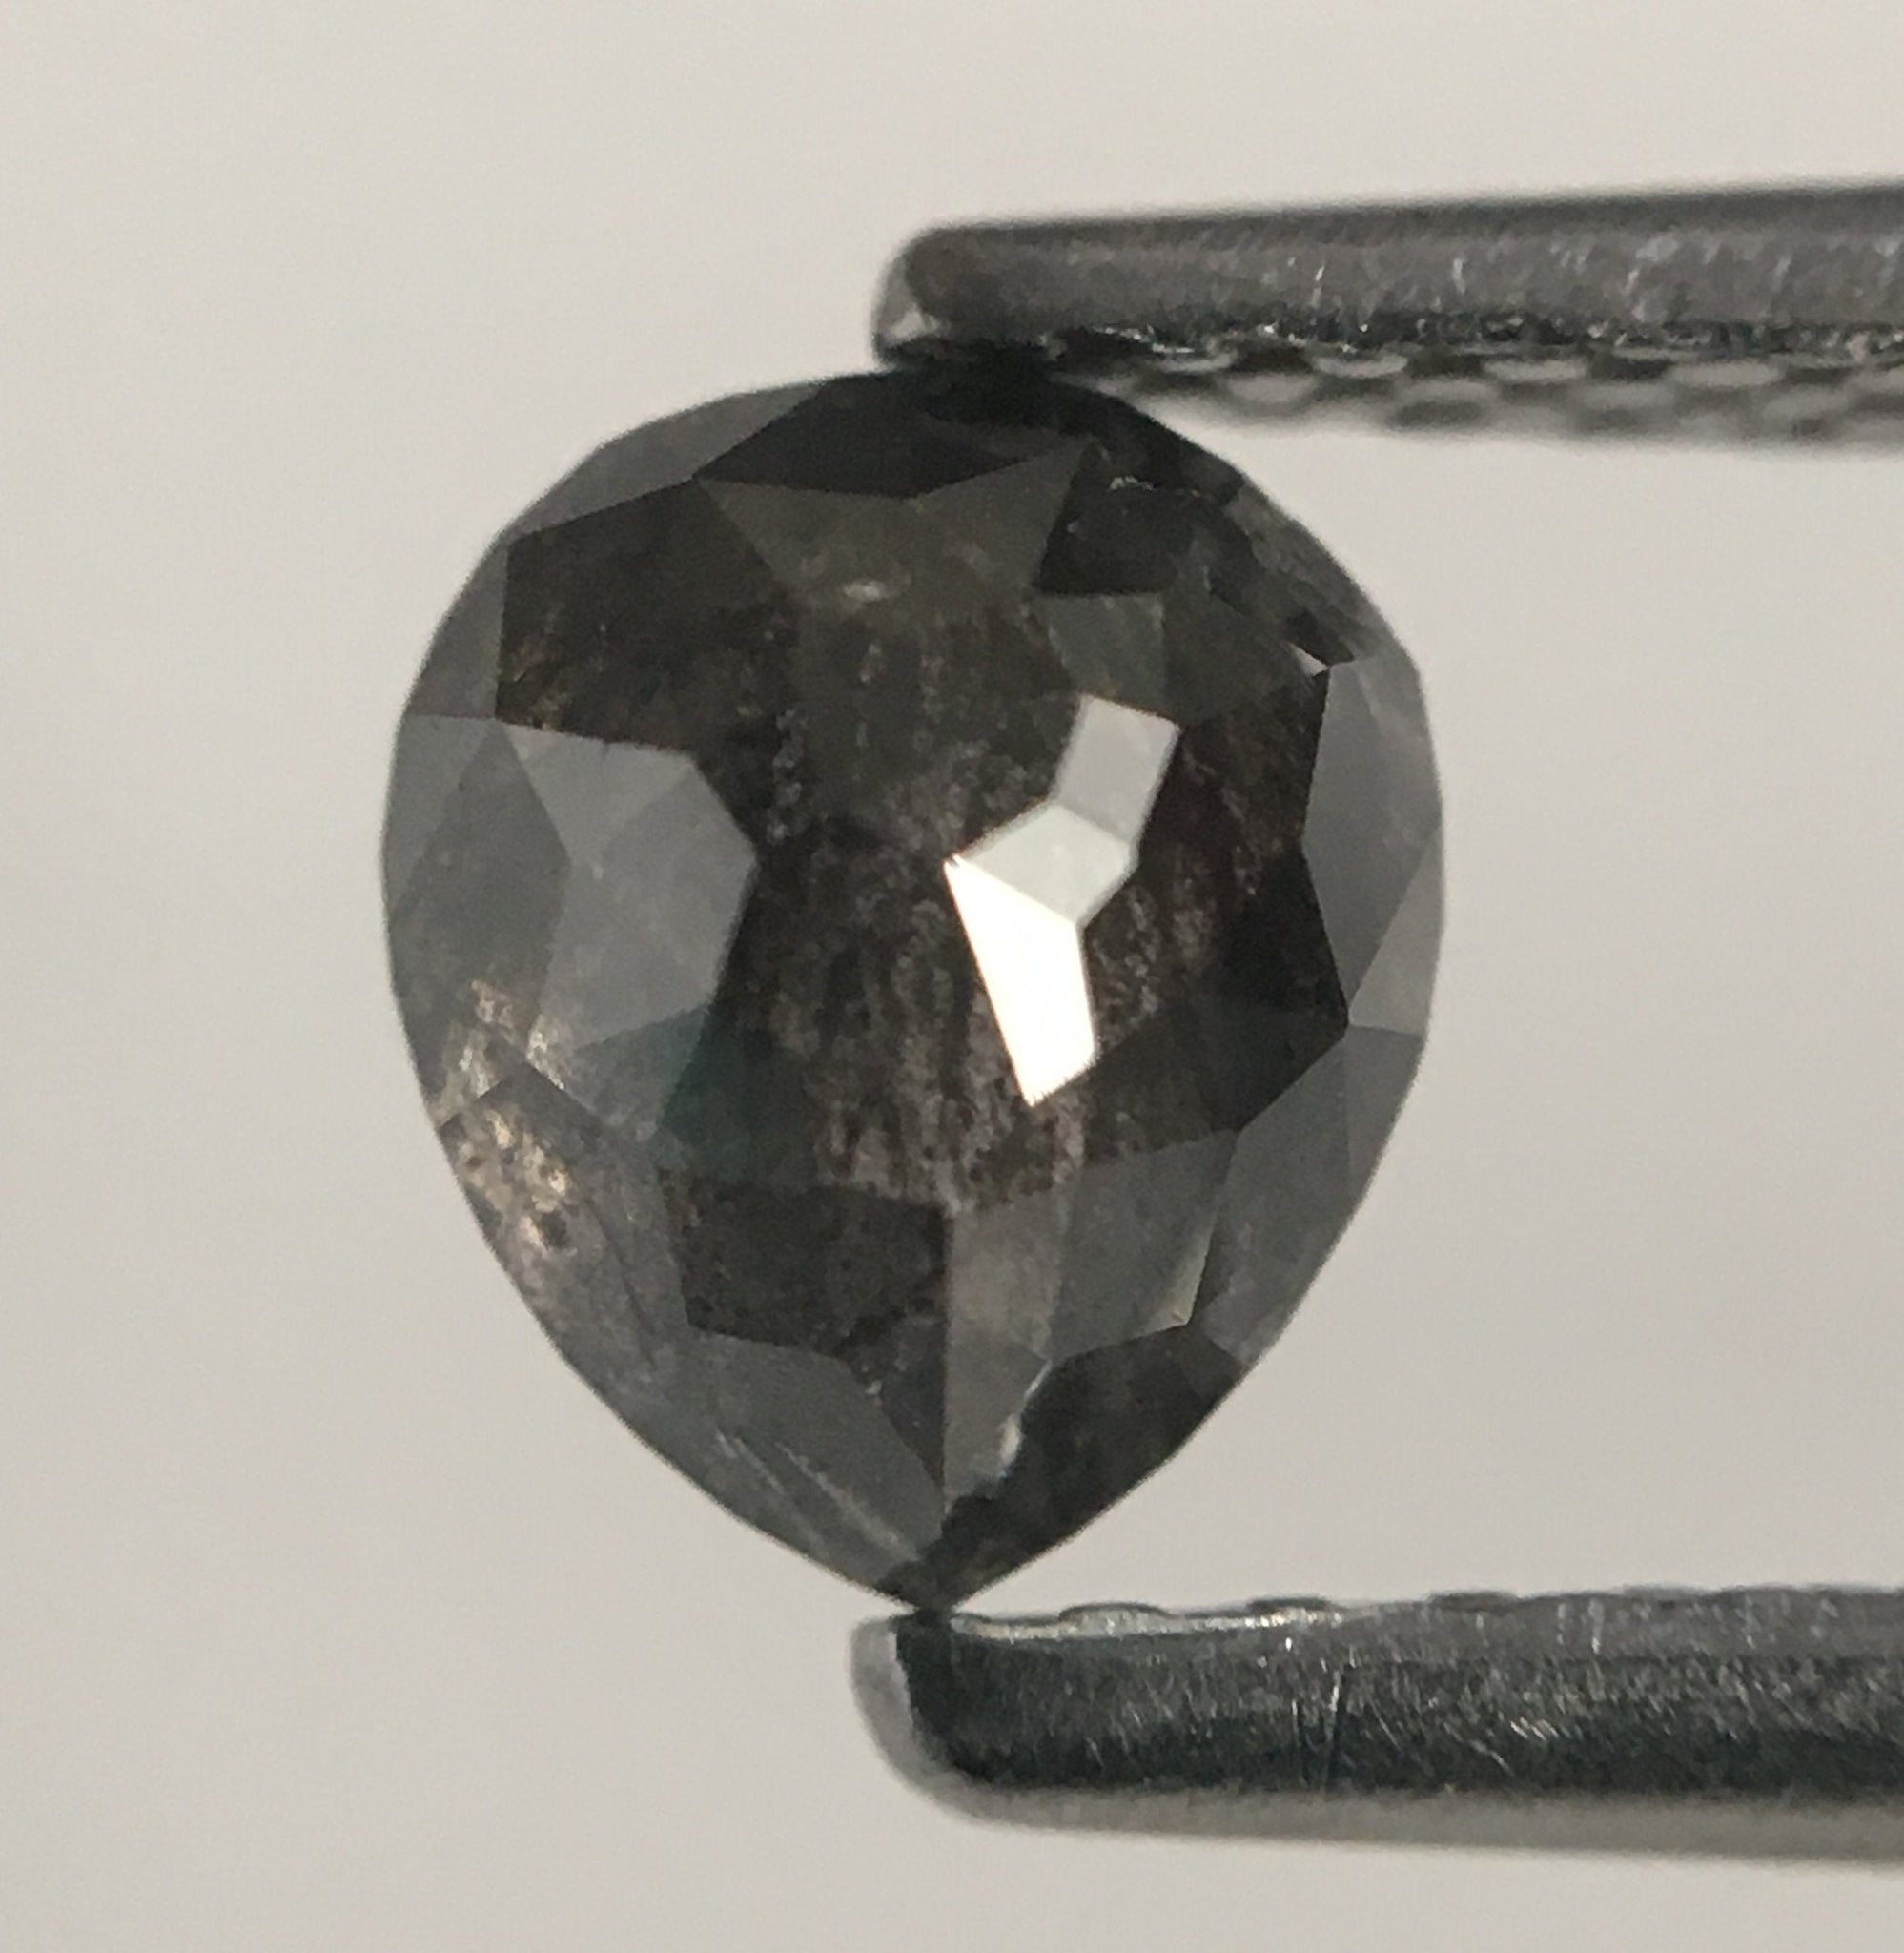 0.66 Ct Pear Cut Loose Natural Diamond Dark Grey 5.48 mm X 4.75 mm X 2.94 mm Grey Rose Cut Pear Natural Loose Diamond SJ47/07 - Amba Jewel